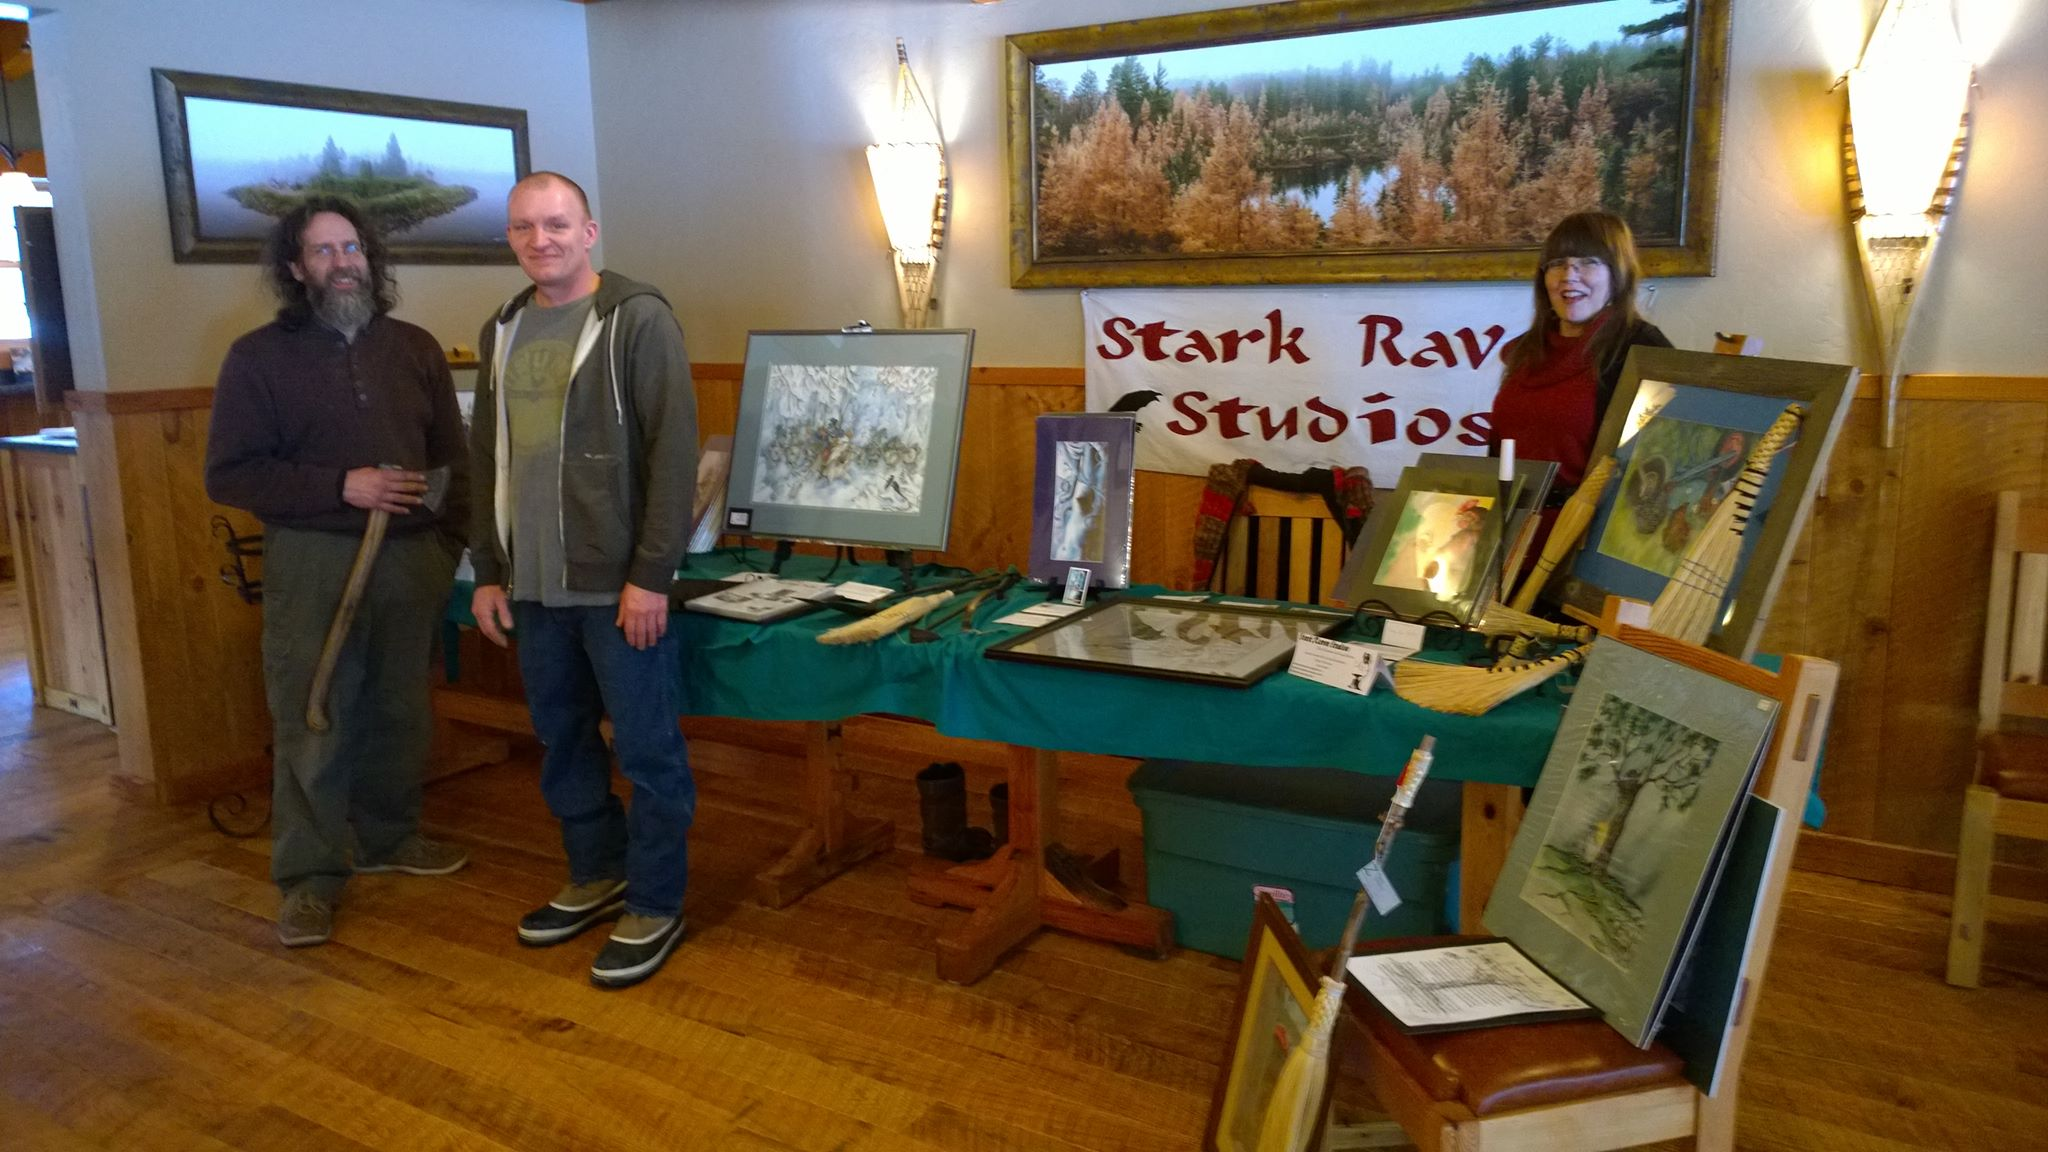 Dan Roesinger, Doug Kikkebusch and Saga Erickson at Cranberry Inn's first Wine and Art event